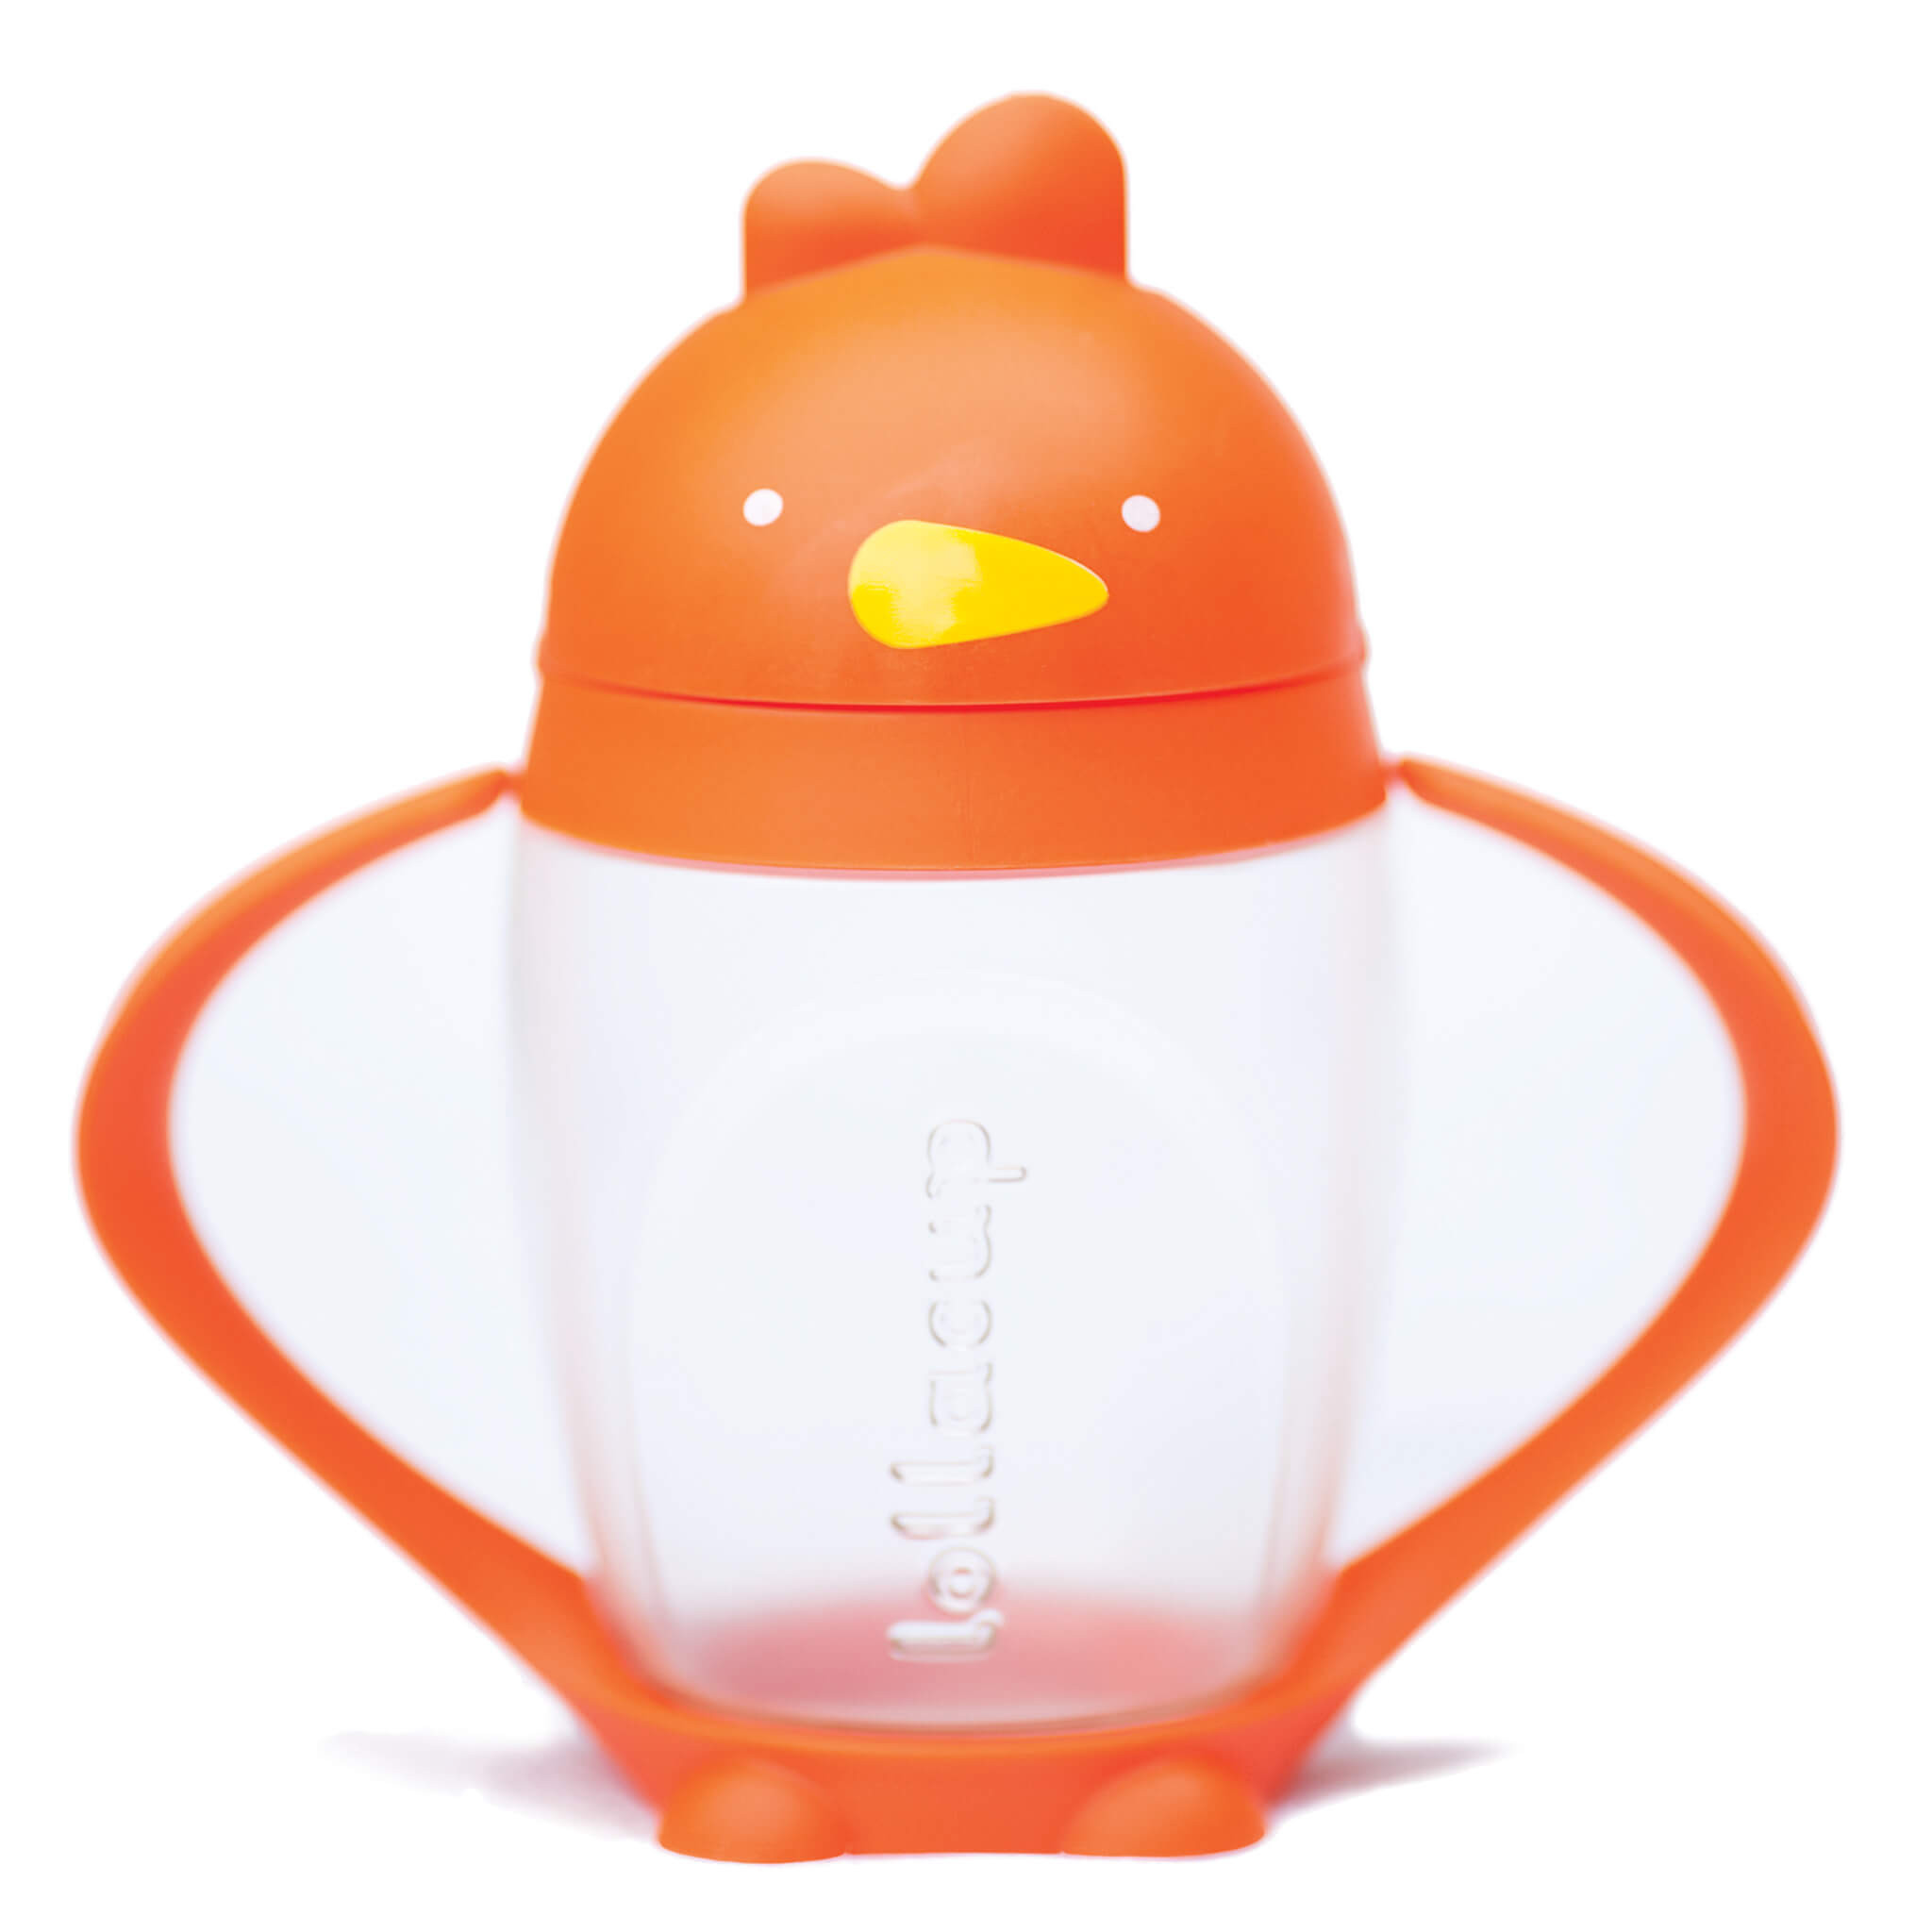 Lollaland Happy Orange Lollacup Toddler Straw Cup